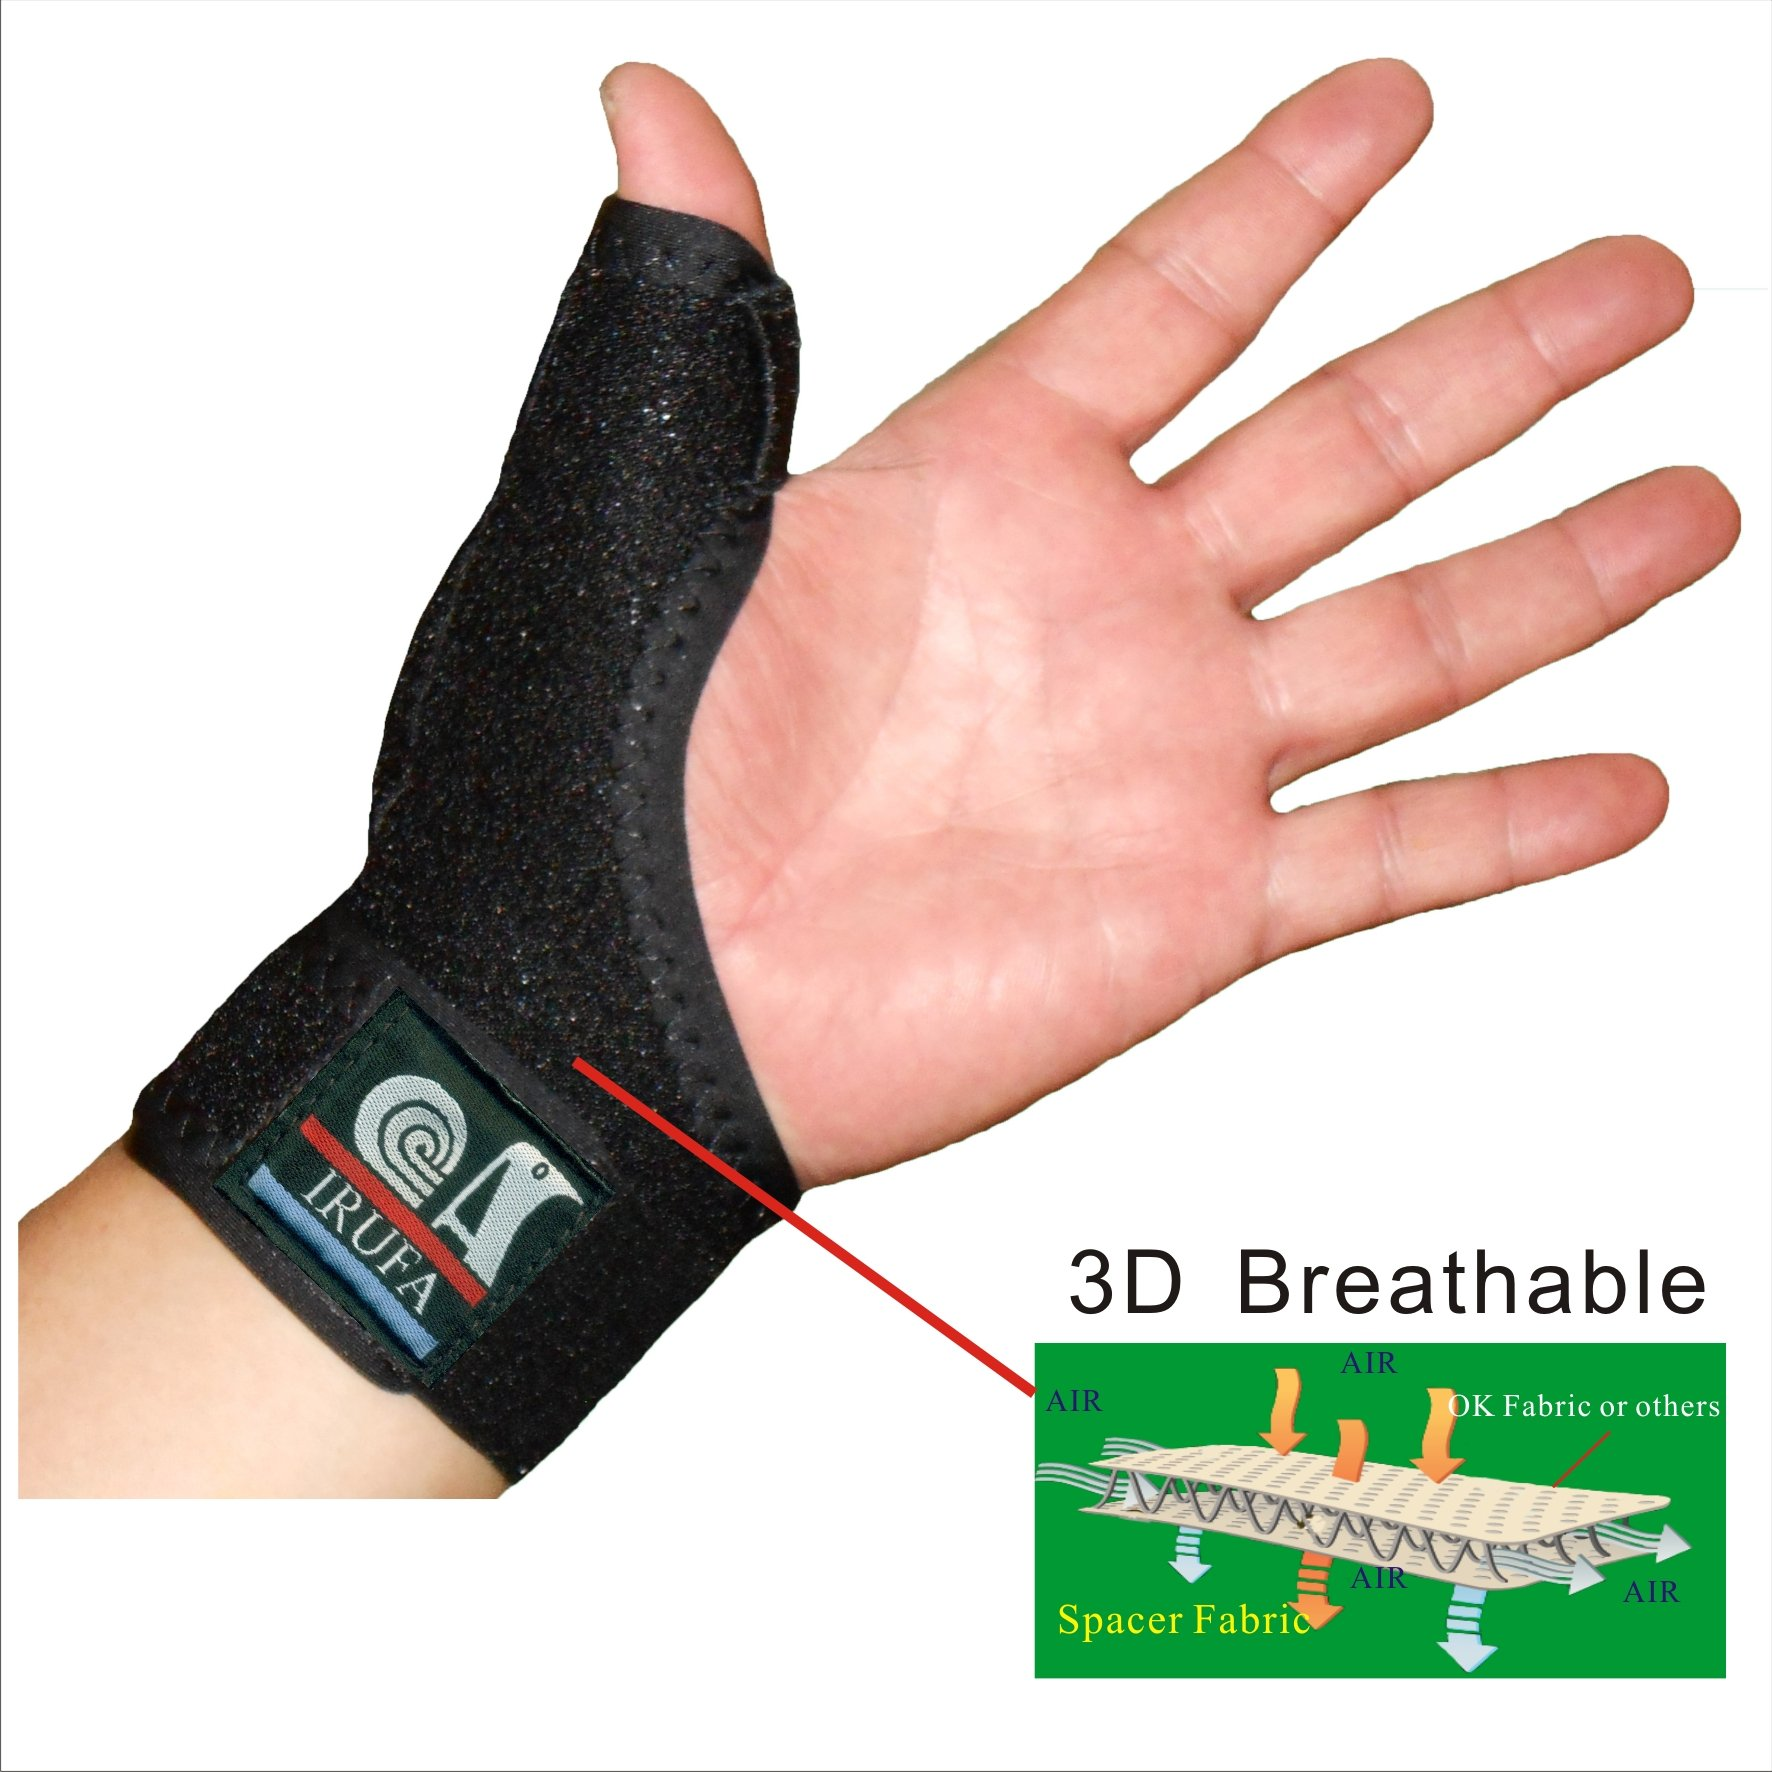 IRUFA, TB-OS-32,3D Breathable Spacer Fabric Reversible CMC Joint Thumb Stabilizer, Splint Spica, Abducted Thumb for BlackBerry Thumb, Trigger Finger, Mommy Thumb, One PCS (Small)